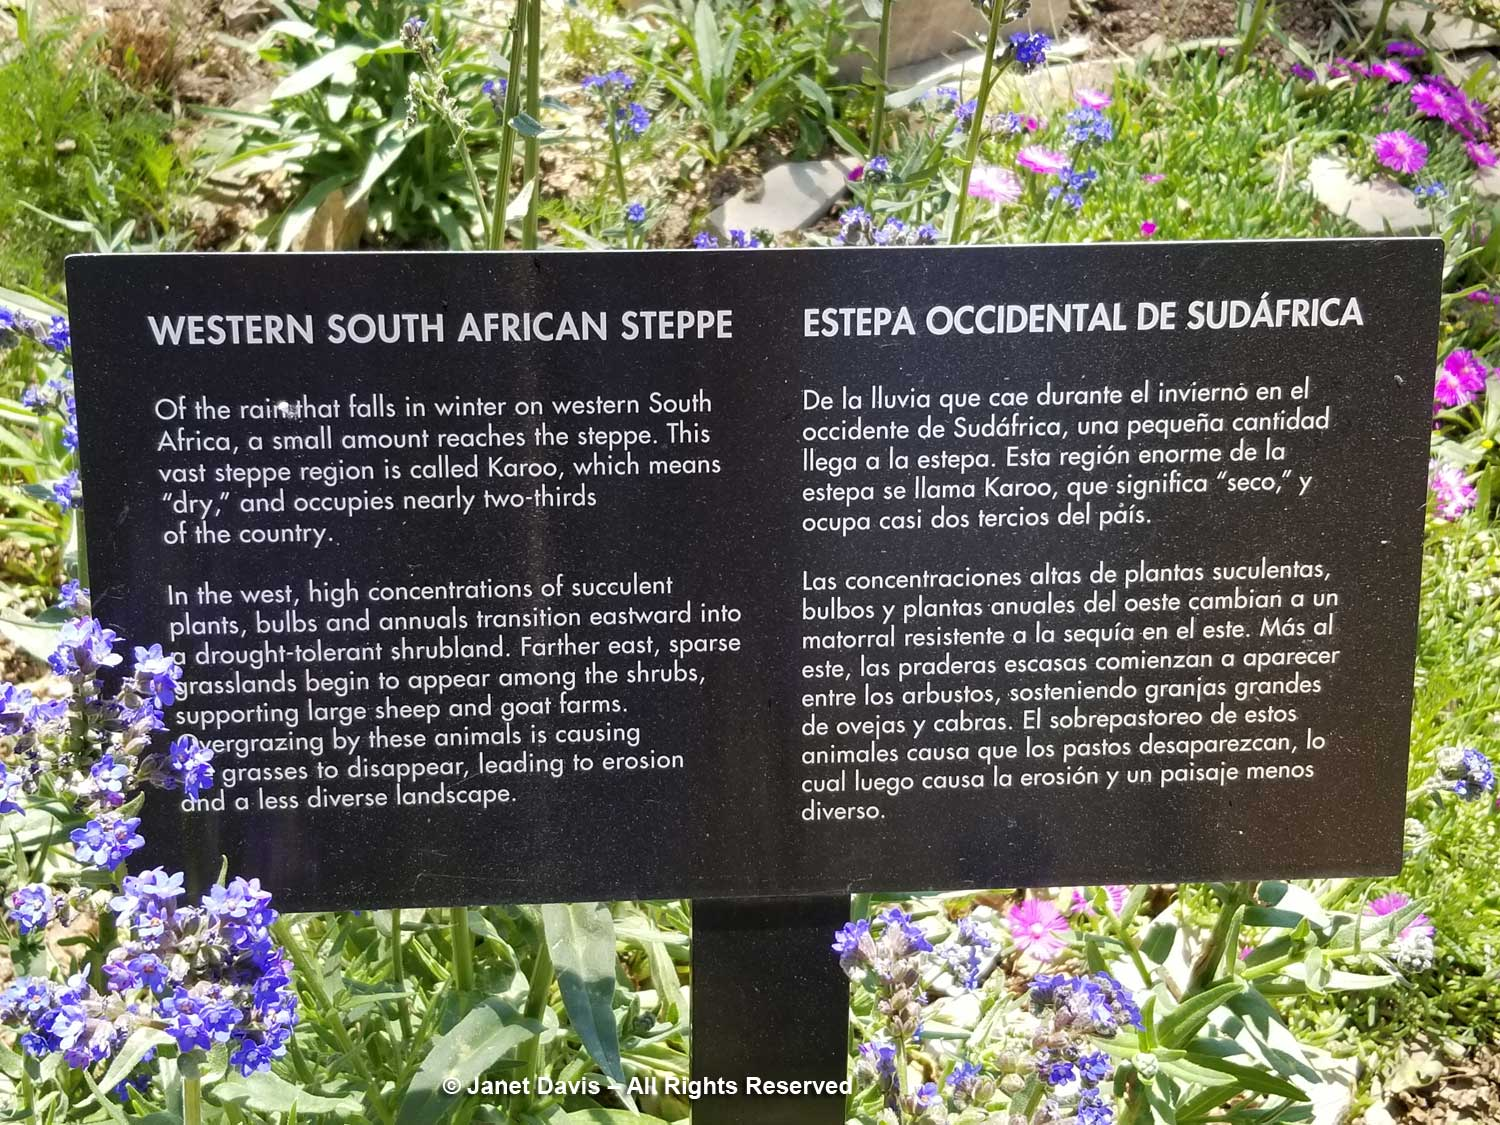 30 Western South Africa Steppe sign Denver Botanic Gardens - Fall Plant & Bulb Sale Denver Botanic Gardens September 27